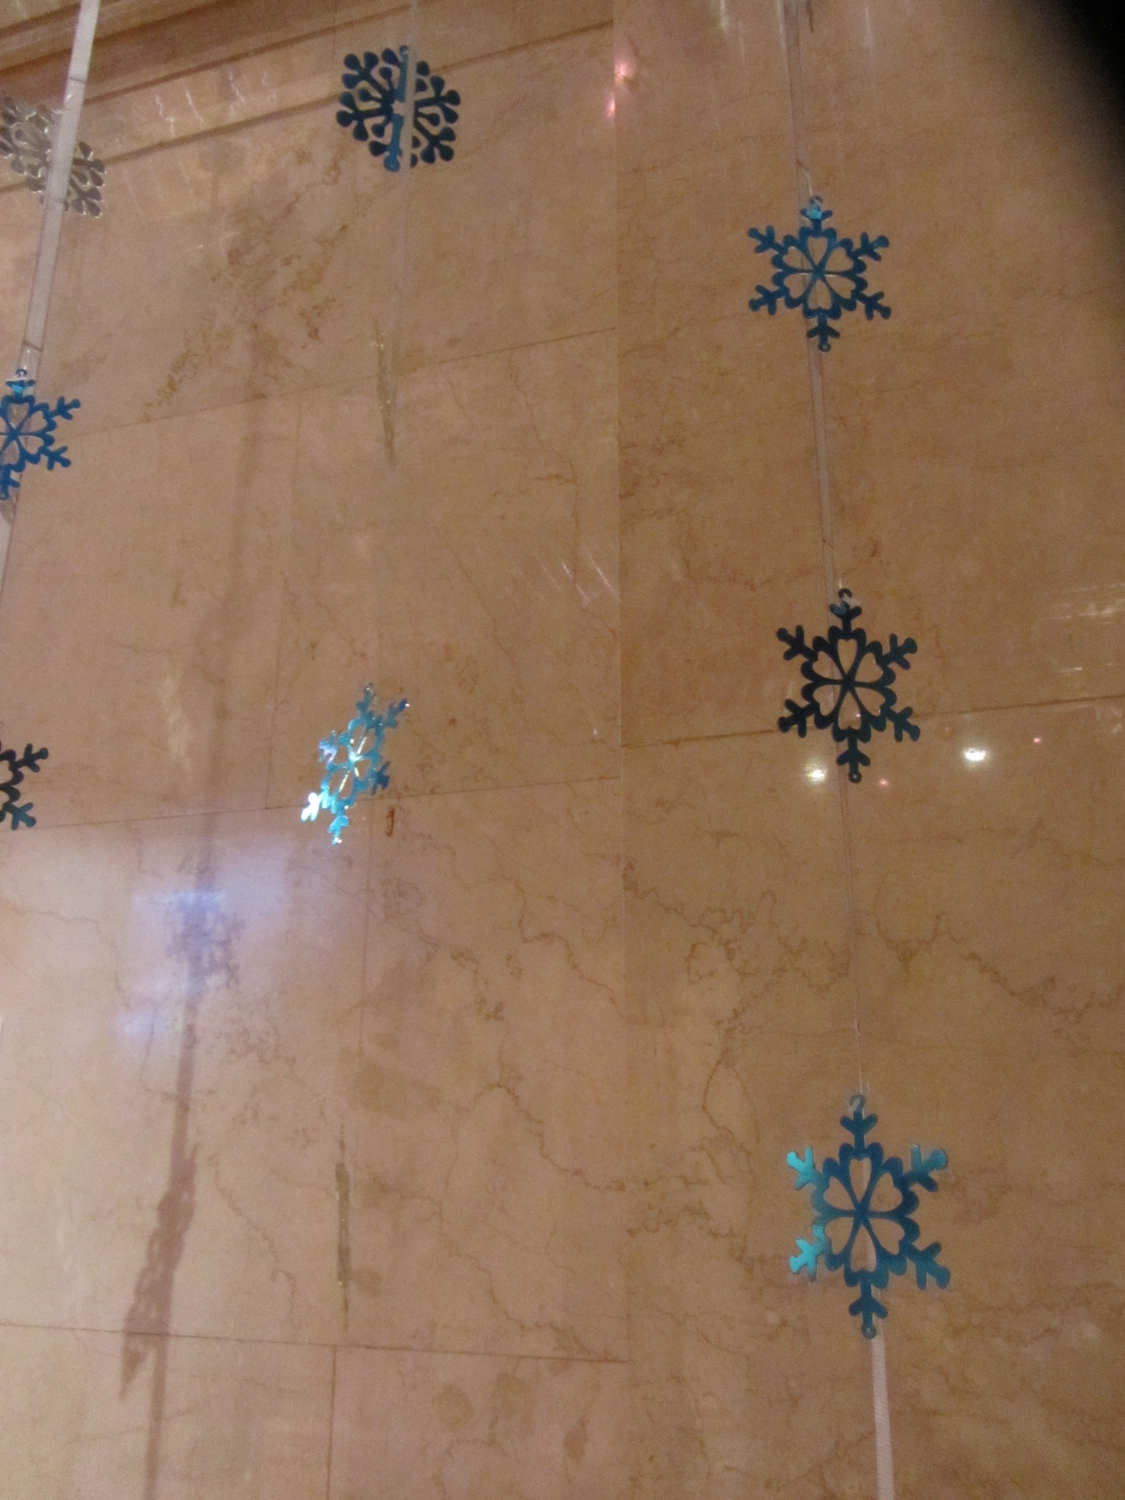 Completed snowflakes rigged in Cipriani